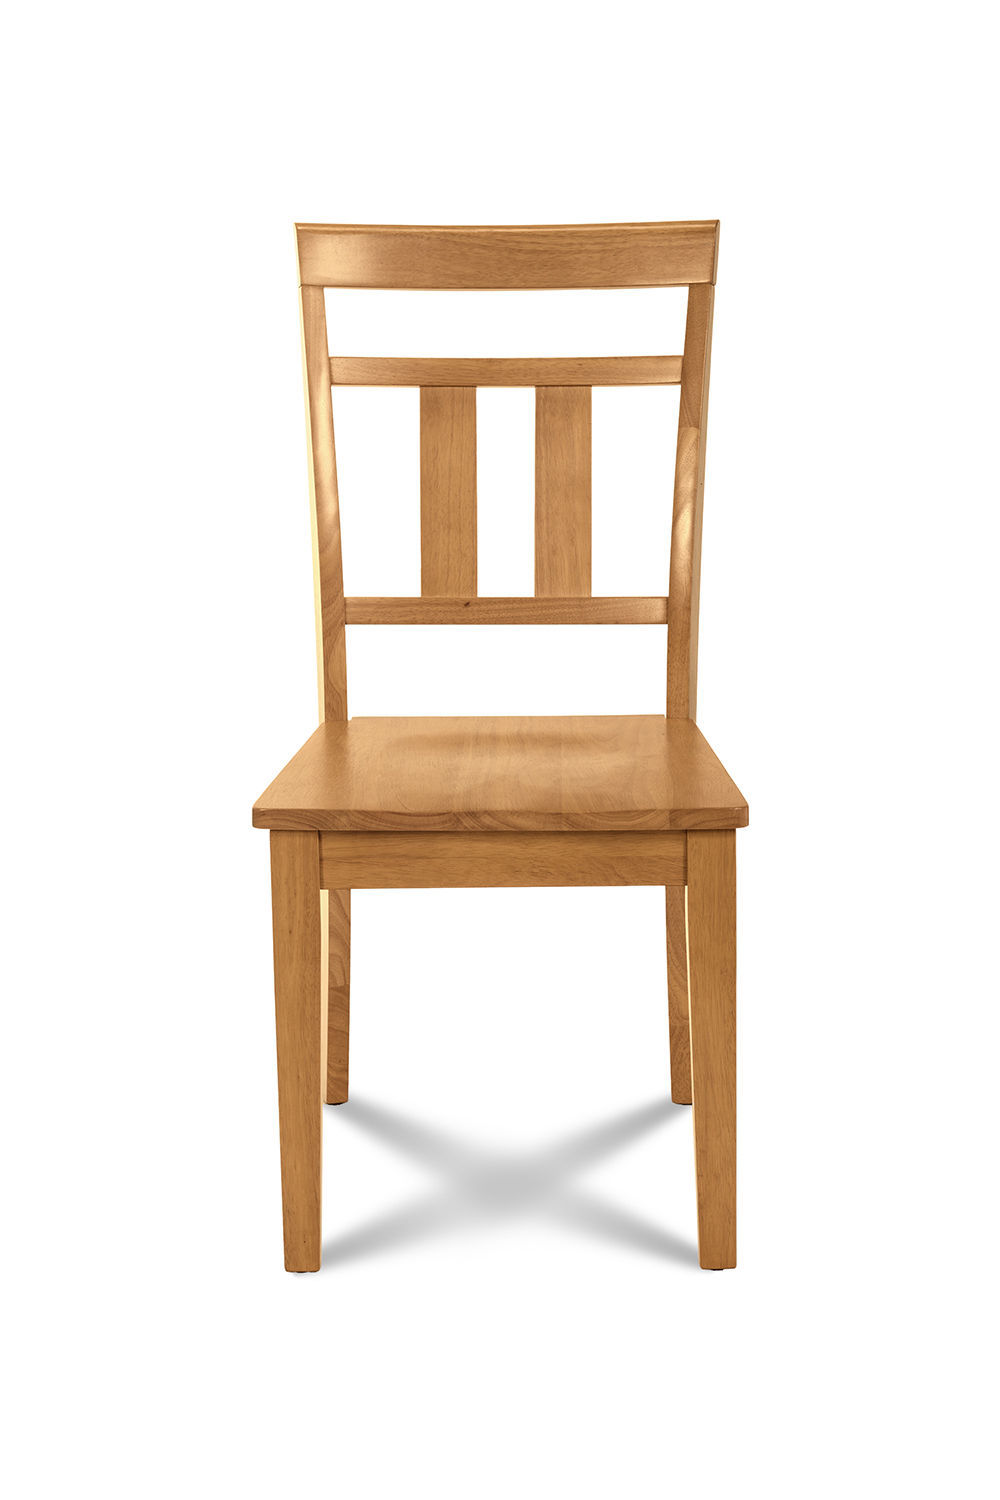 SET OF 2 KITCHEN DINING SIDE CHAIRS w/ WOODEN SEAT IN  OAK FINISH